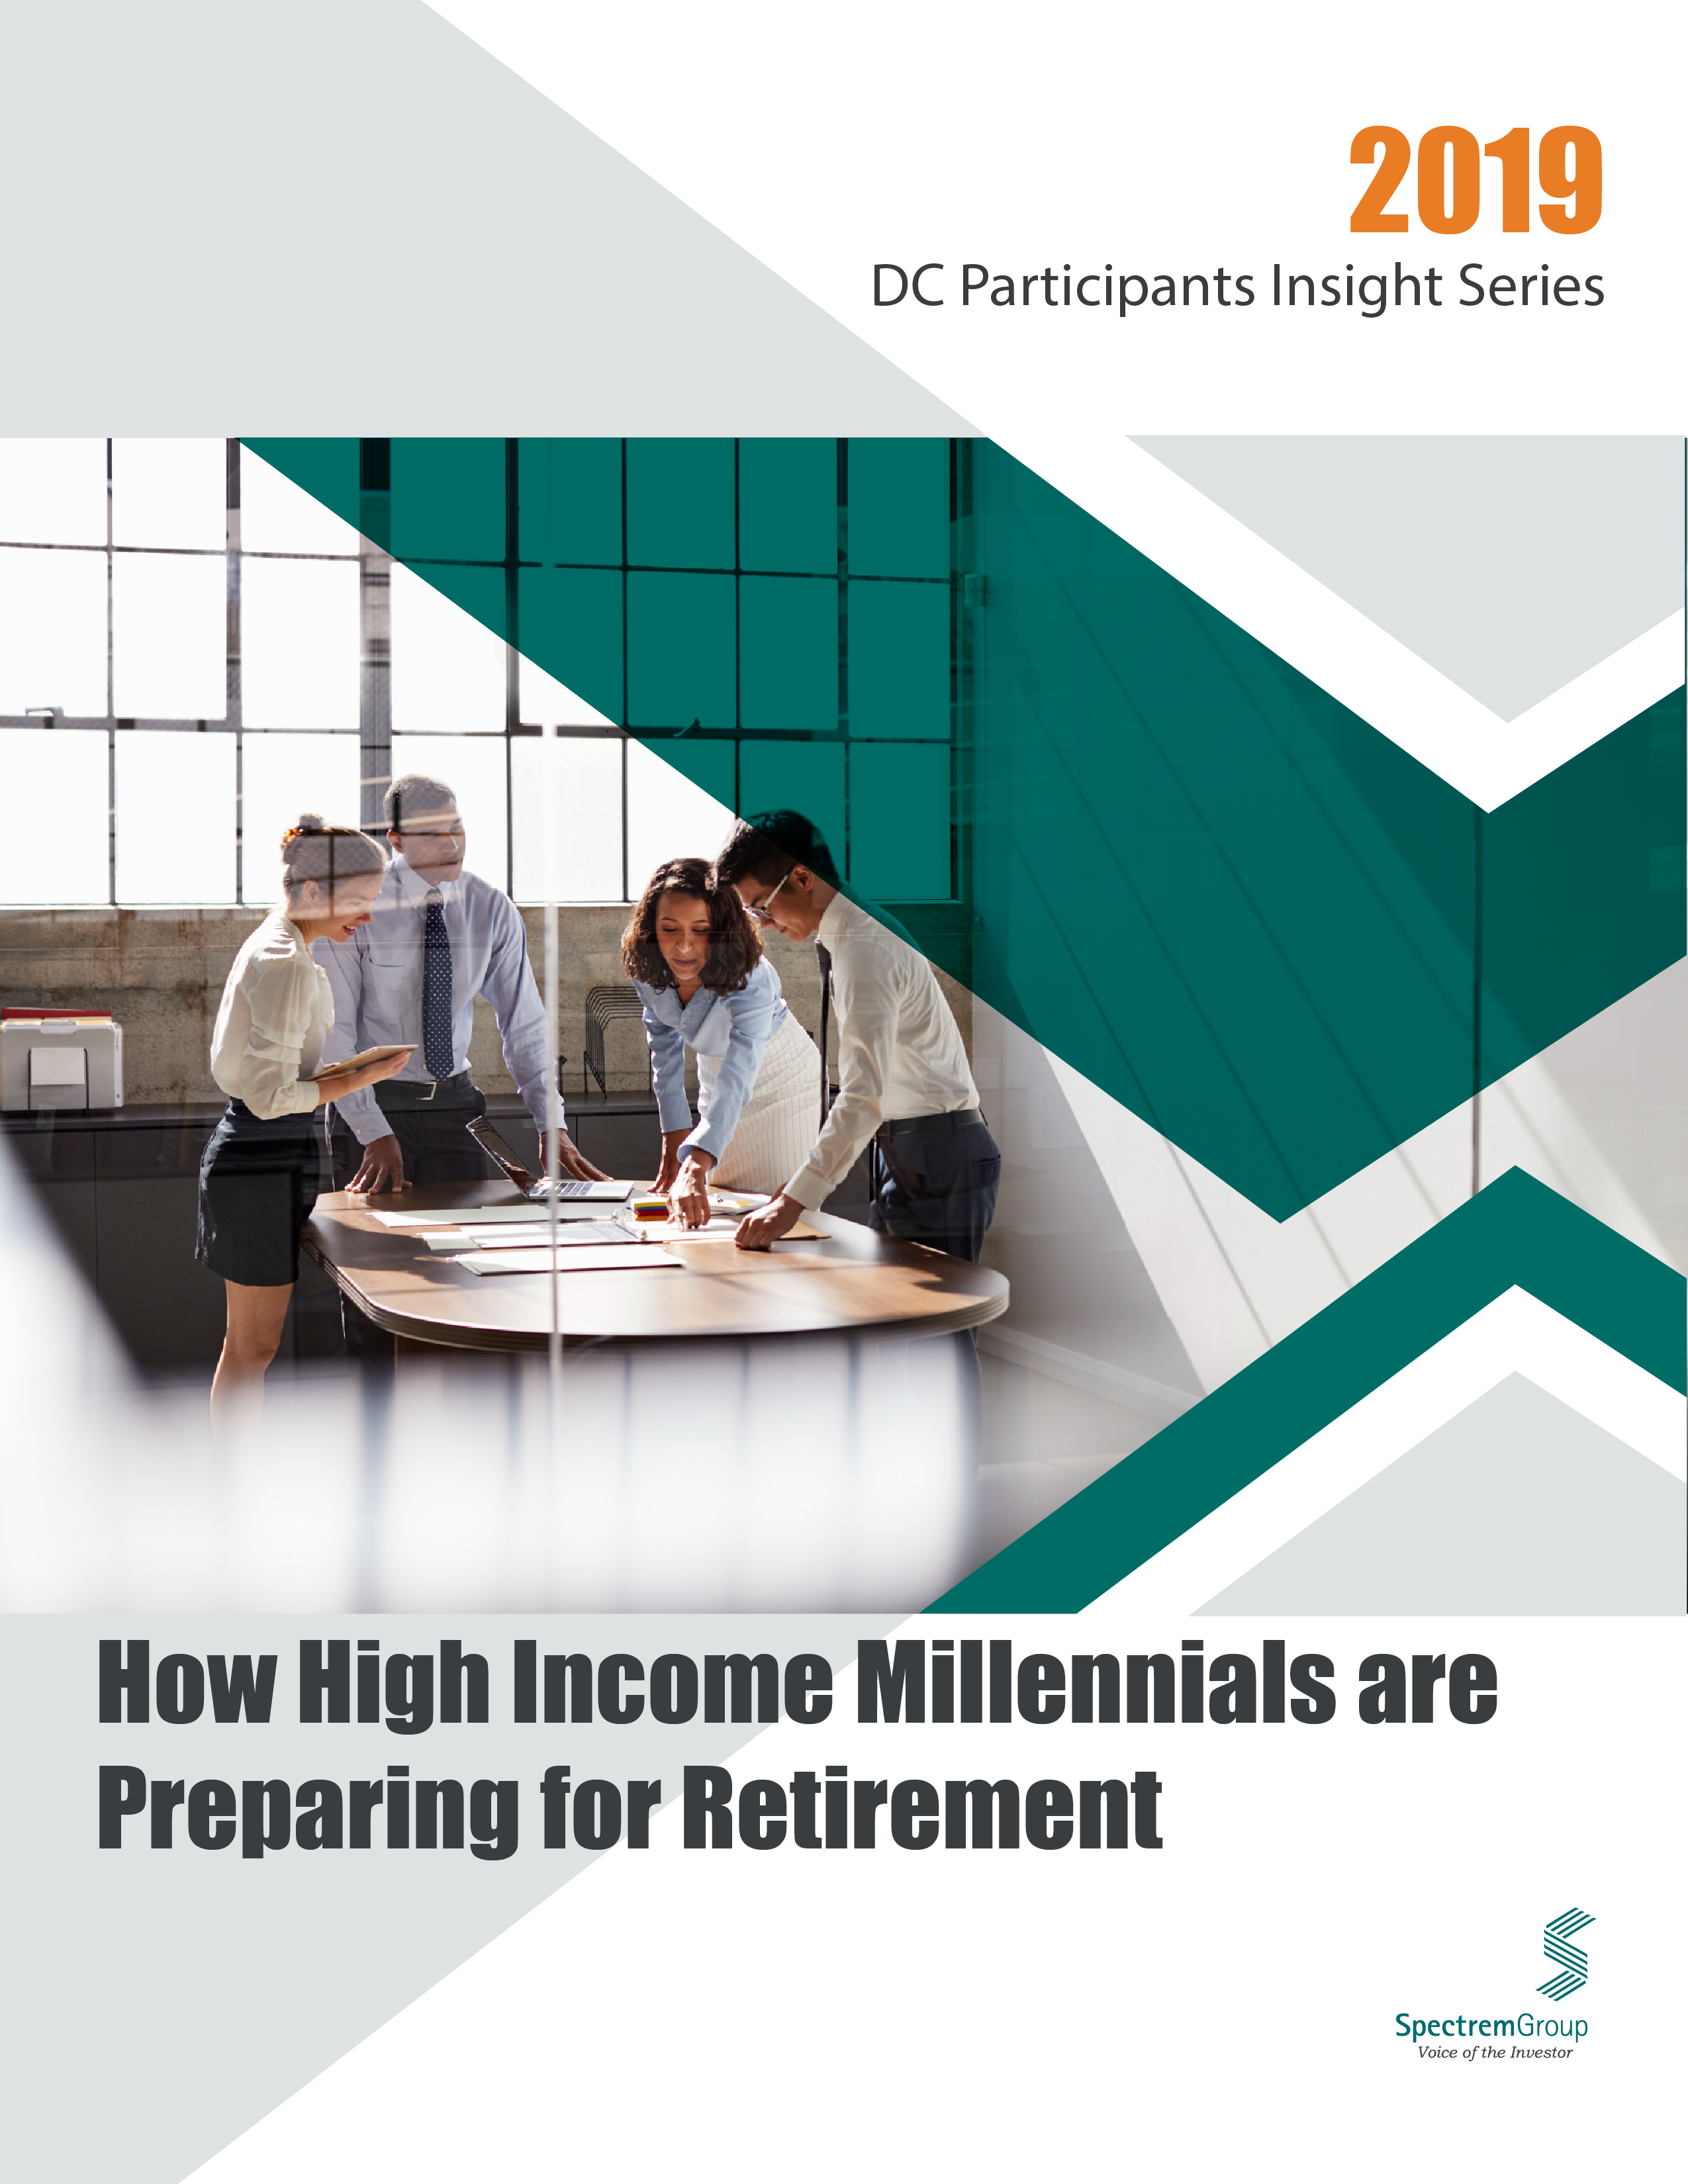 2019 DC Participant Insight Series: How High Income Millennials are Preparing for Retirement